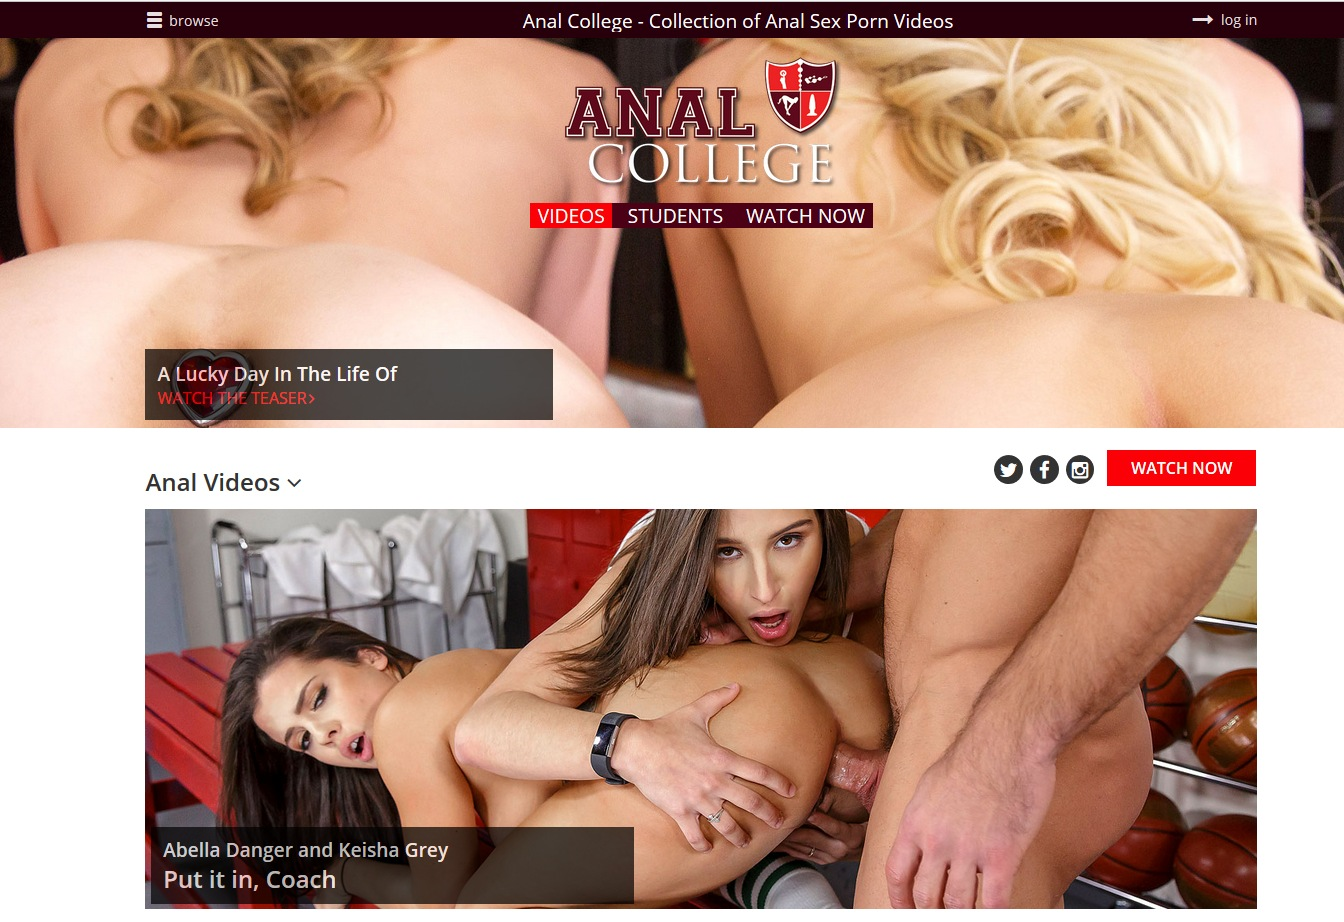 free shared member passwords for analcollege reviewed and tested by Gay from Stamford